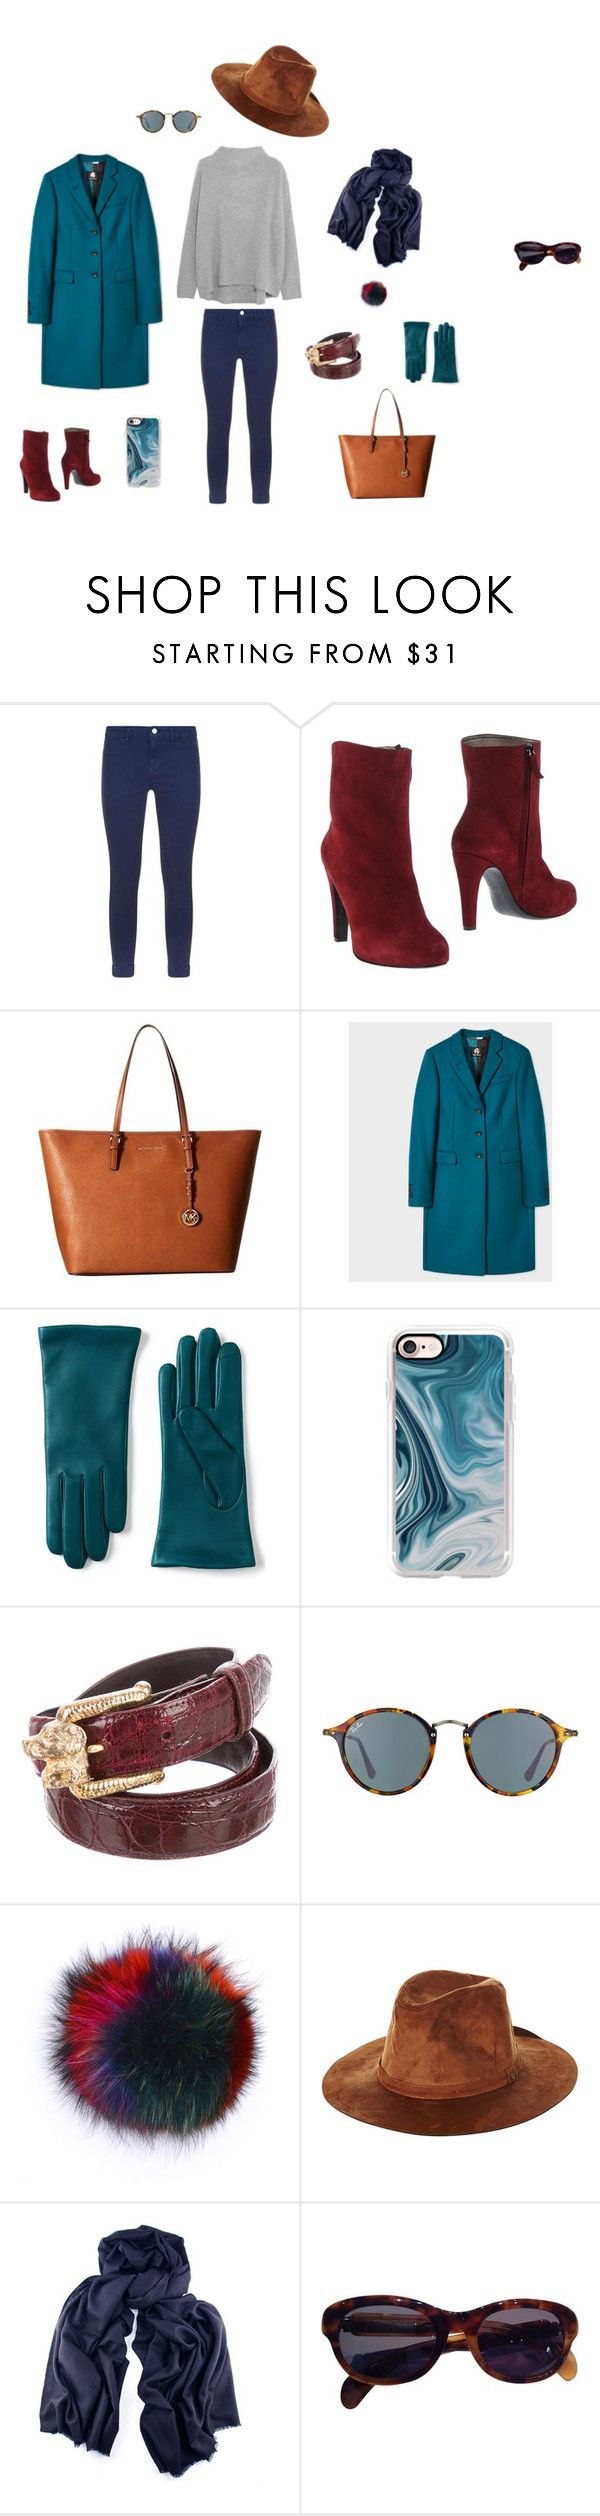 """Лук №3 (серый свитер)"" by madlily86 on Polyvore featuring мода, Vince, J Brand, New York Industrie, MICHAEL Michael Kors, Paul Smith, Lands' End, Casetify, Ray-Ban и Bobbl"